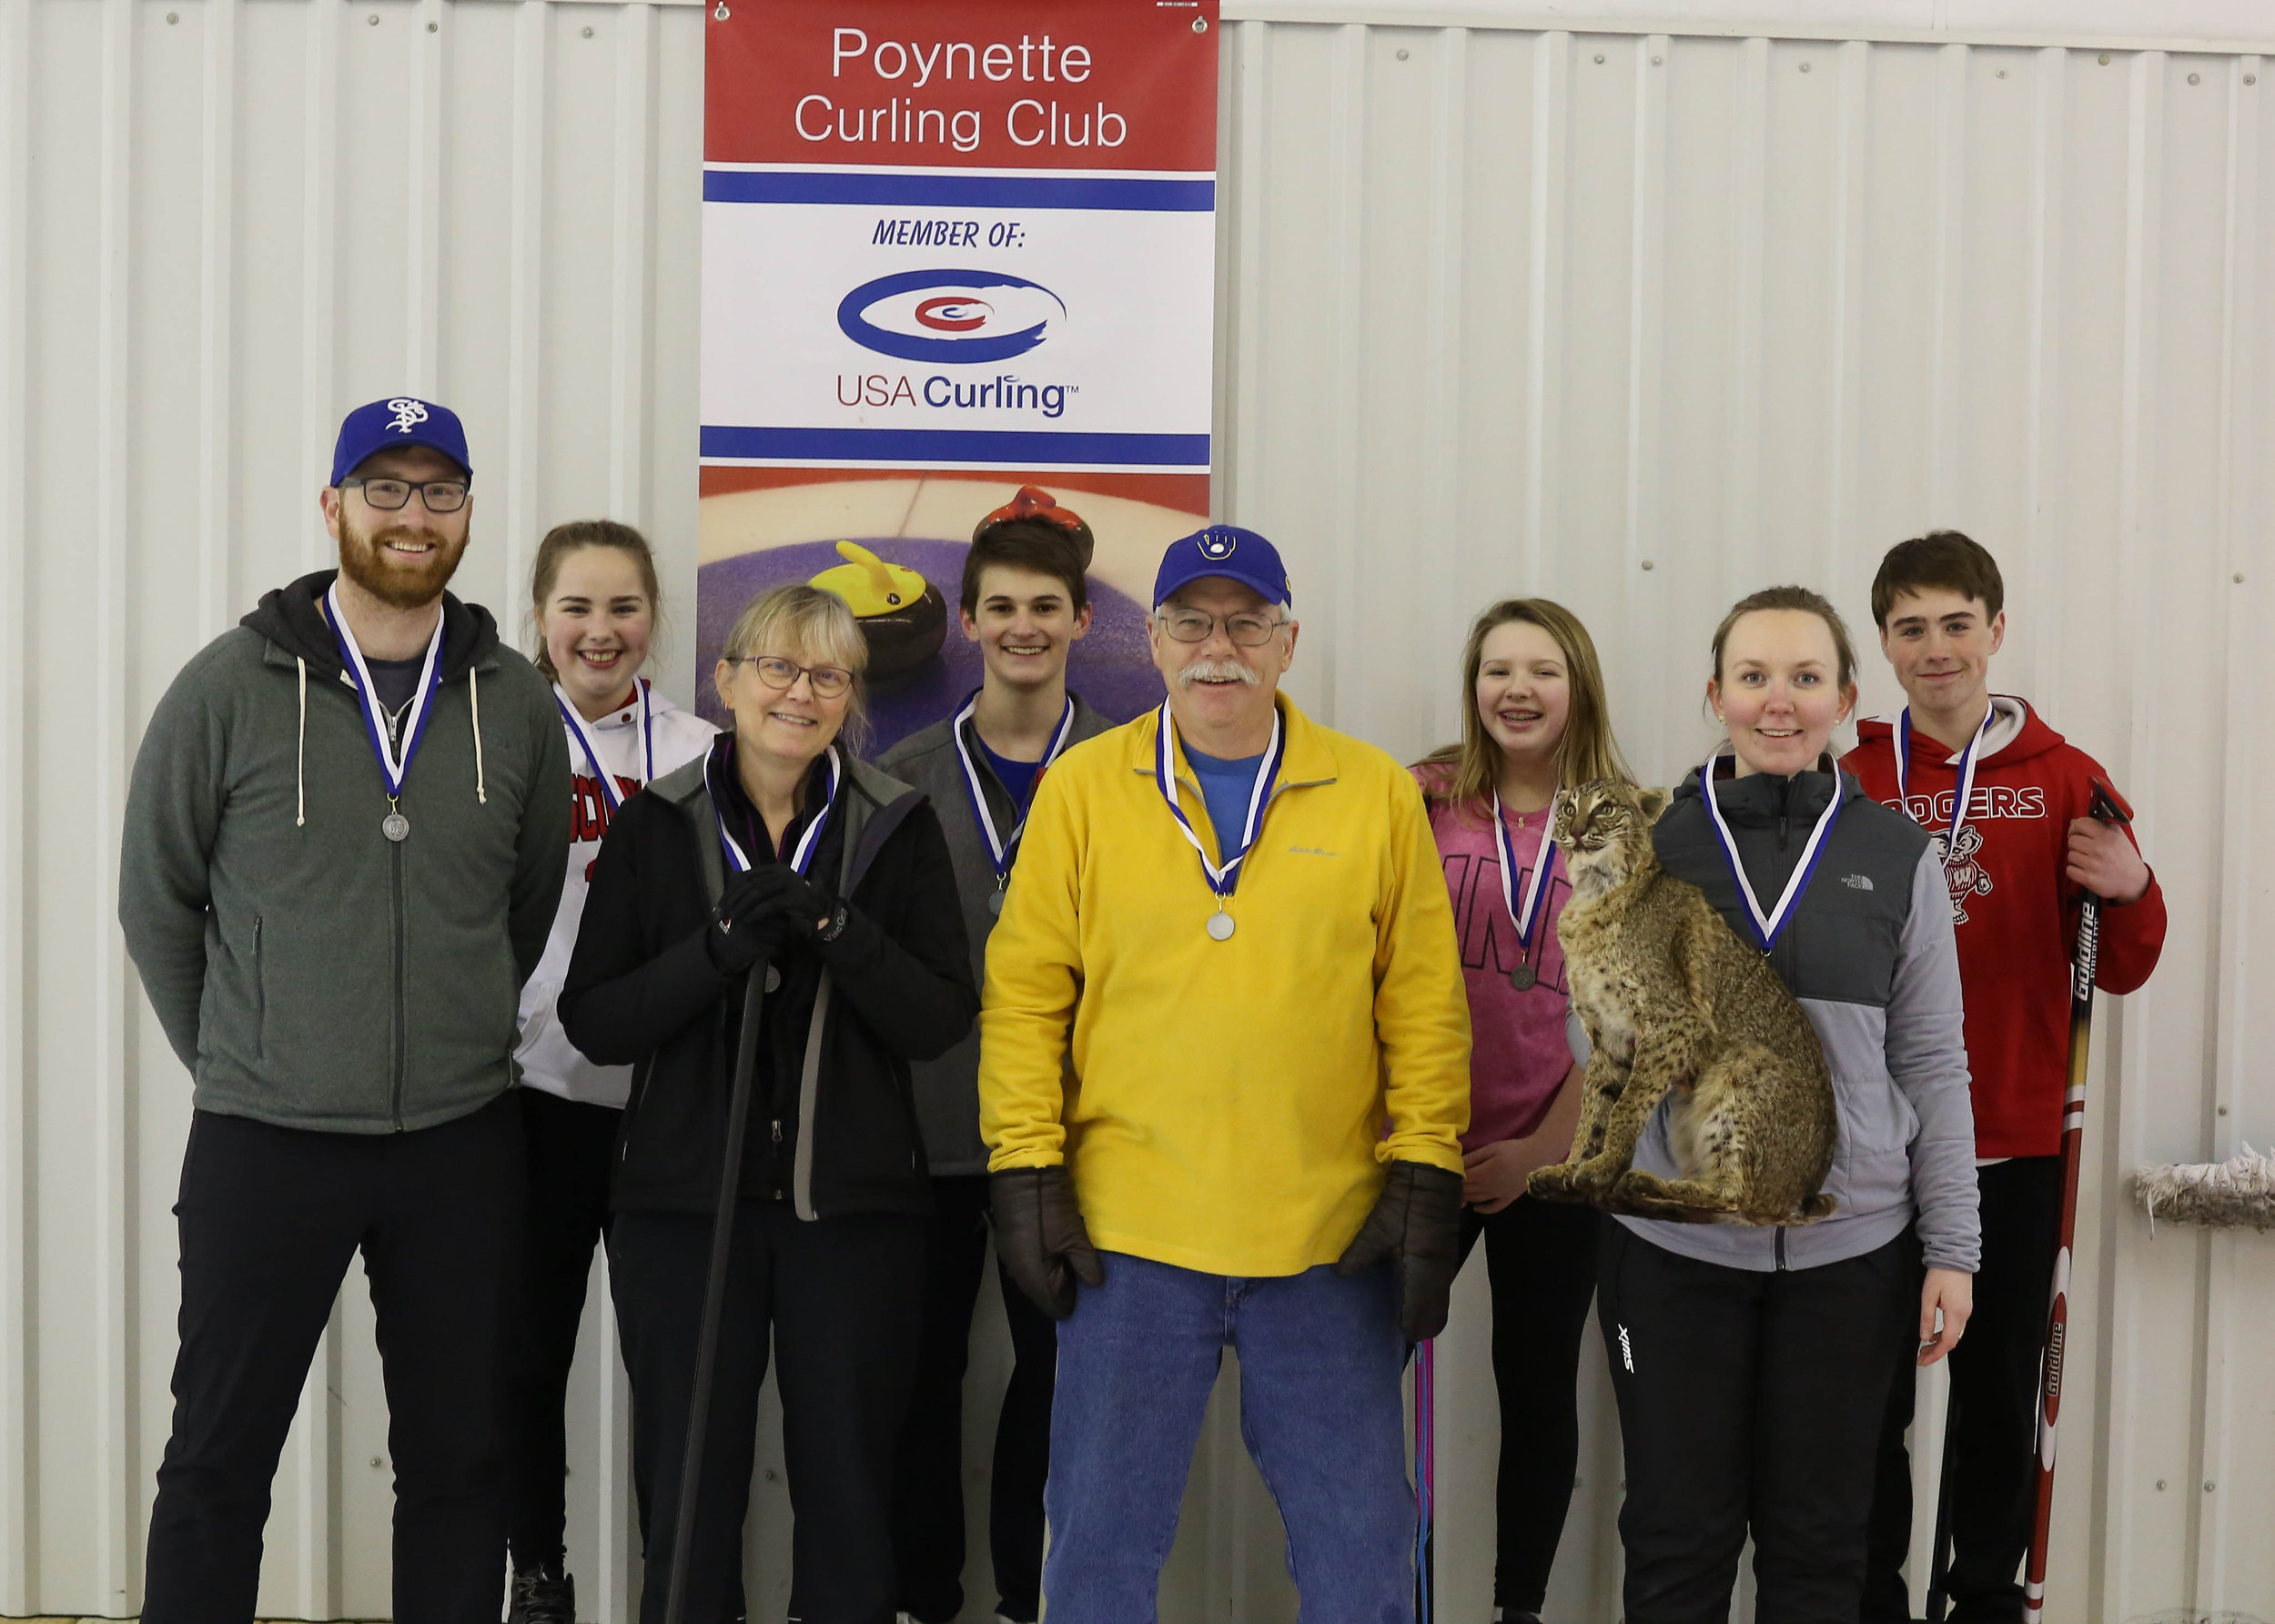 4th Event - 2018 Poynette Curl for the Cur